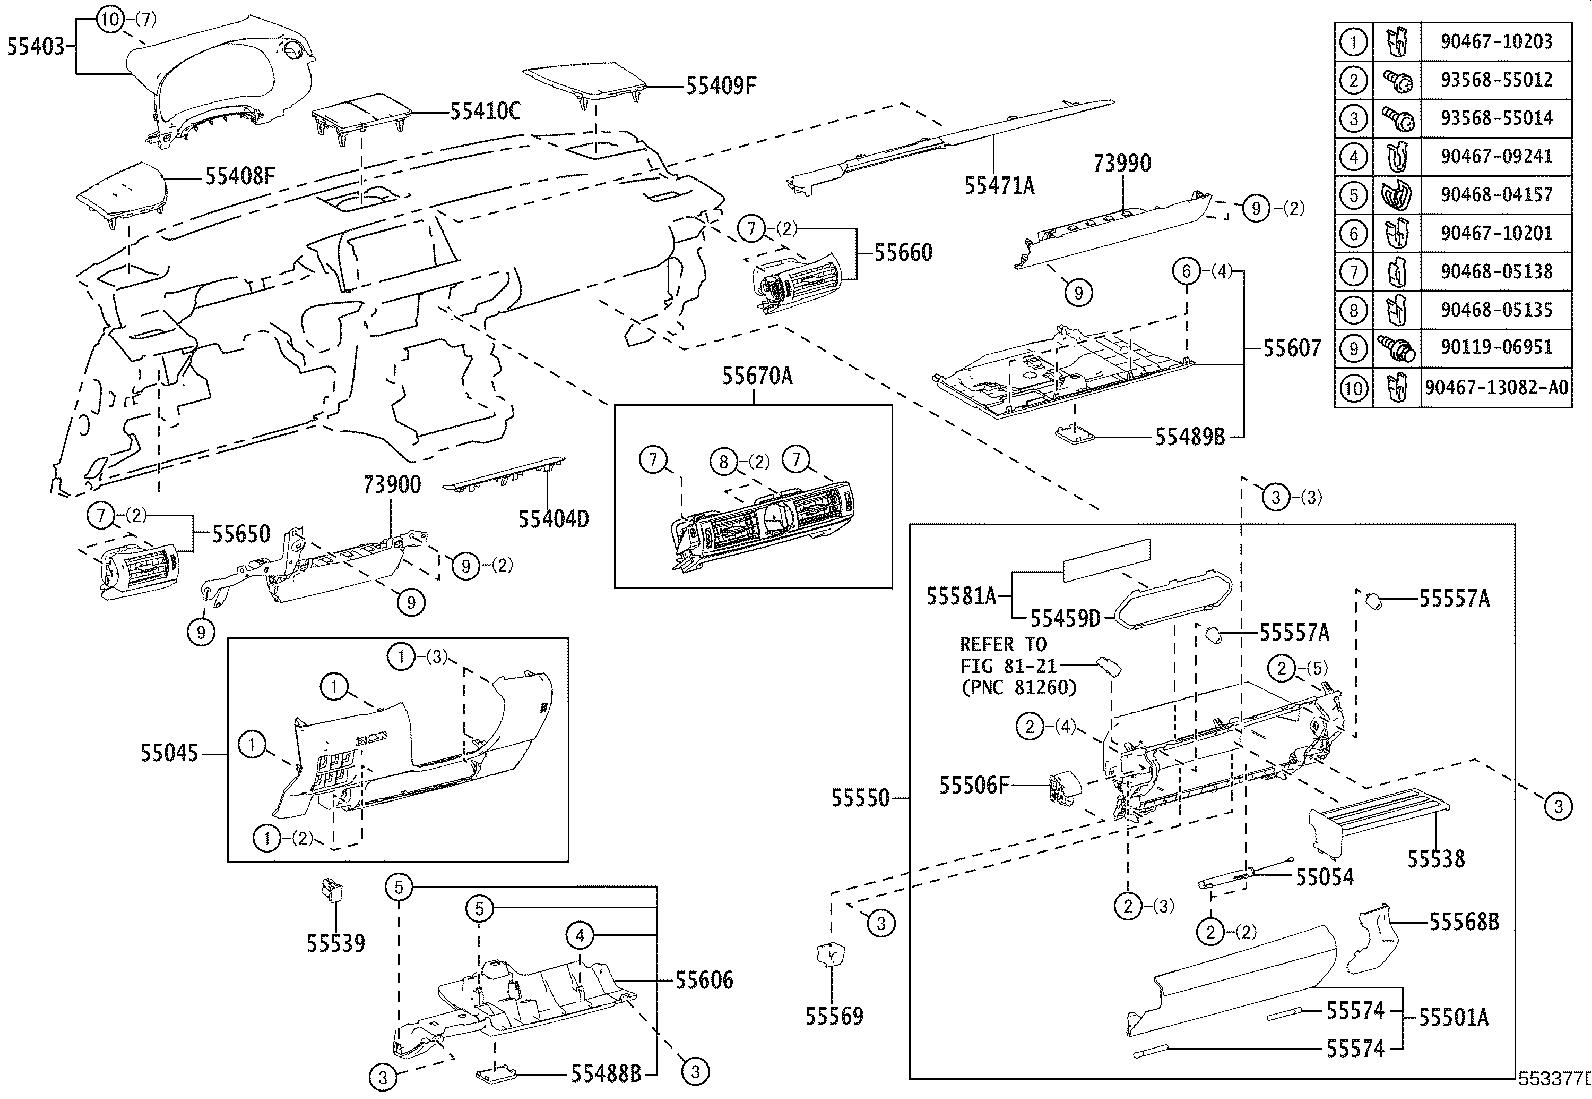 2010 Lexus Pad sub-assembly, instrument panel safety